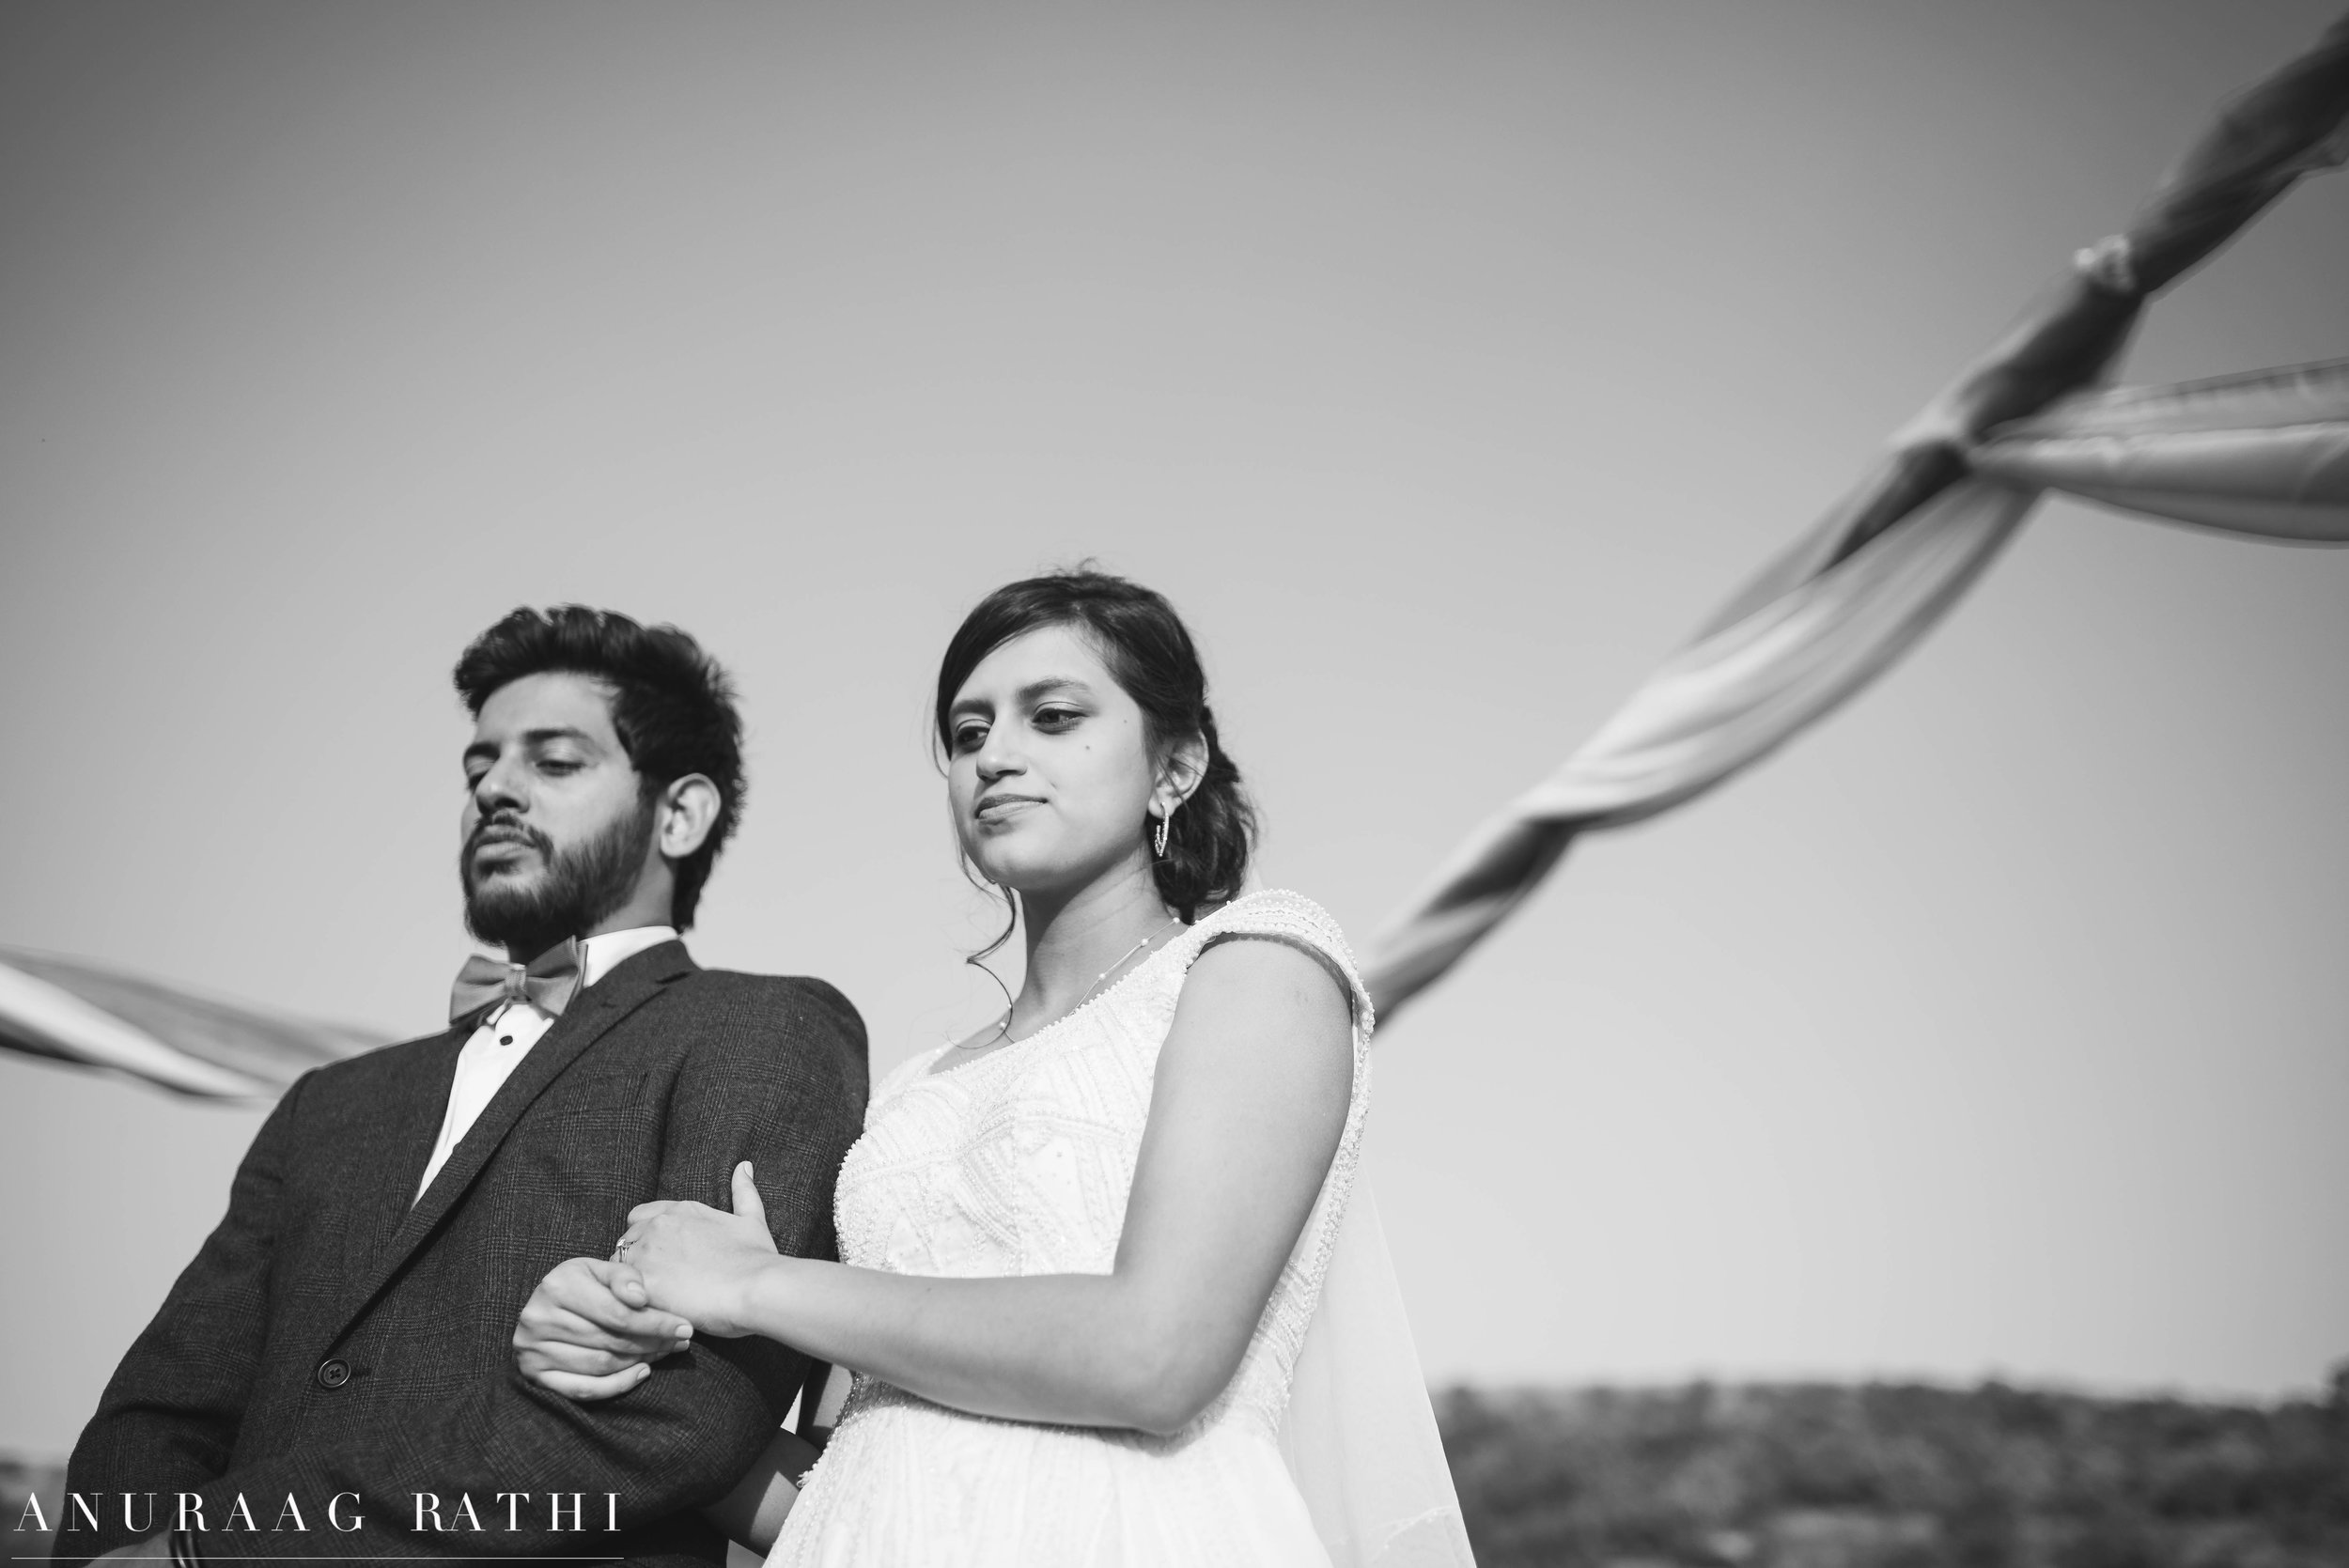 Anuraag Rathi Mumbai Candid Wedding Photographer